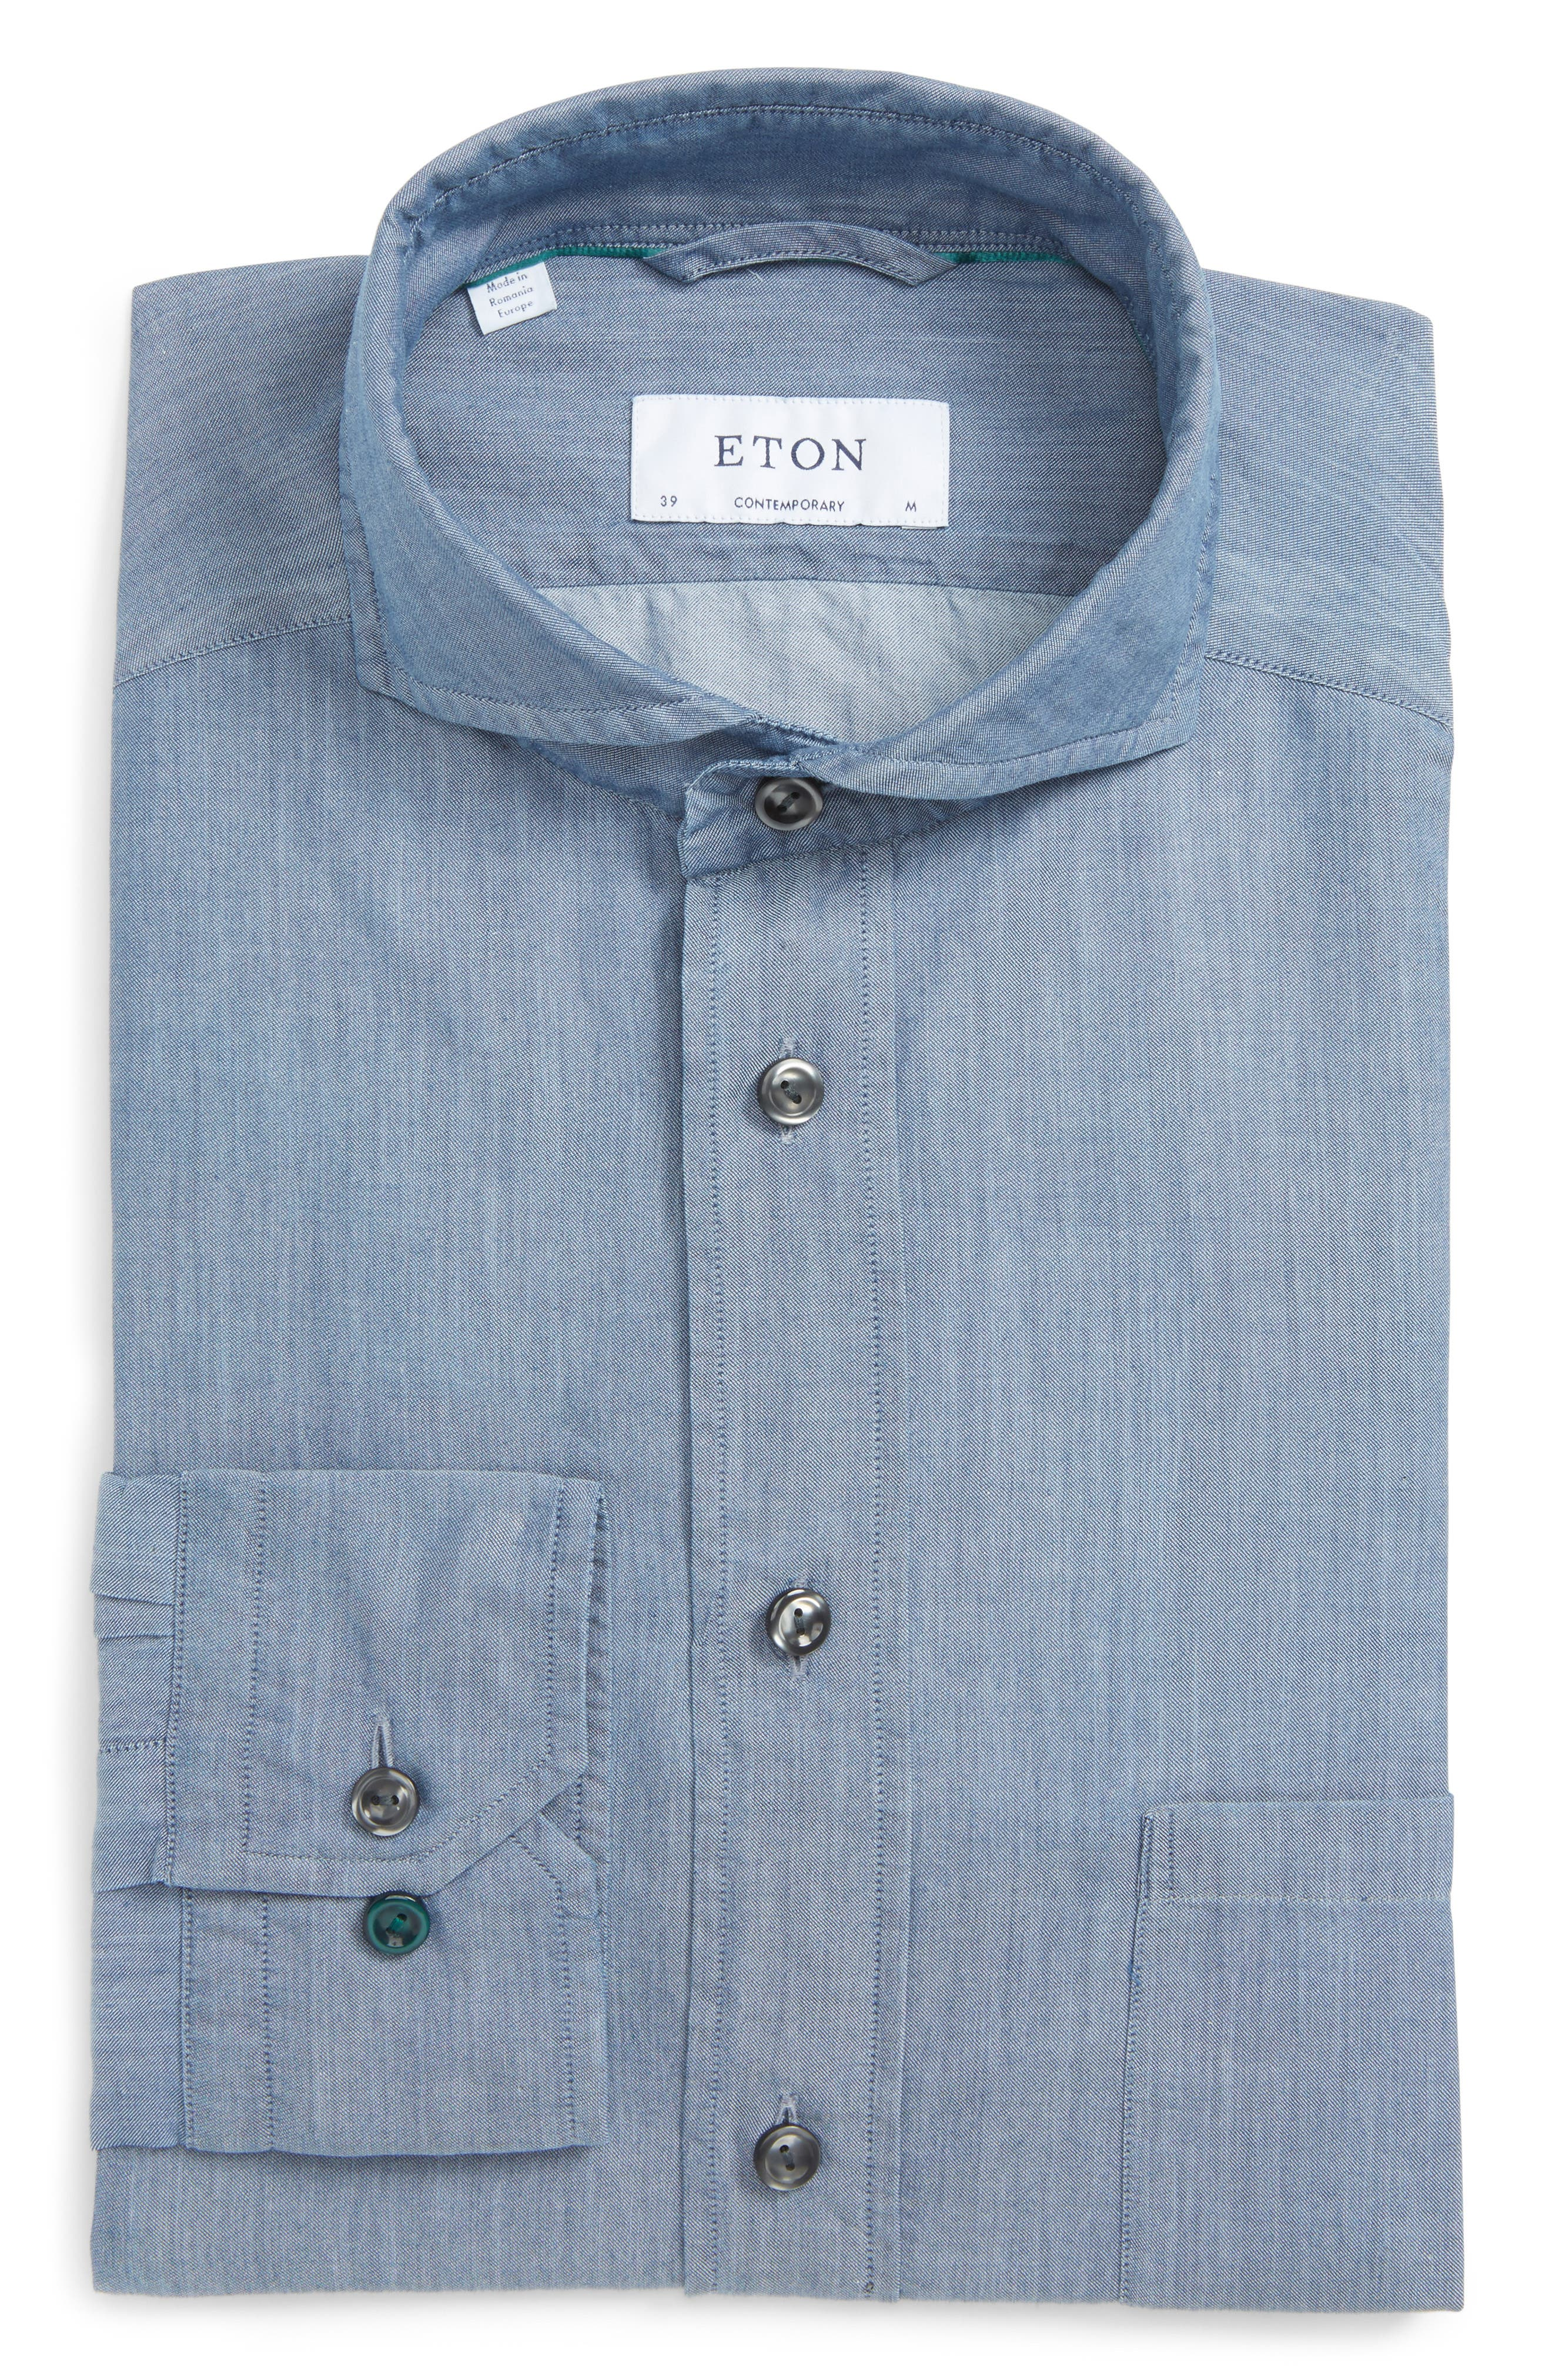 Alternate Image 1 Selected - Eton Contemporary Fit Chambray Dress Shirt